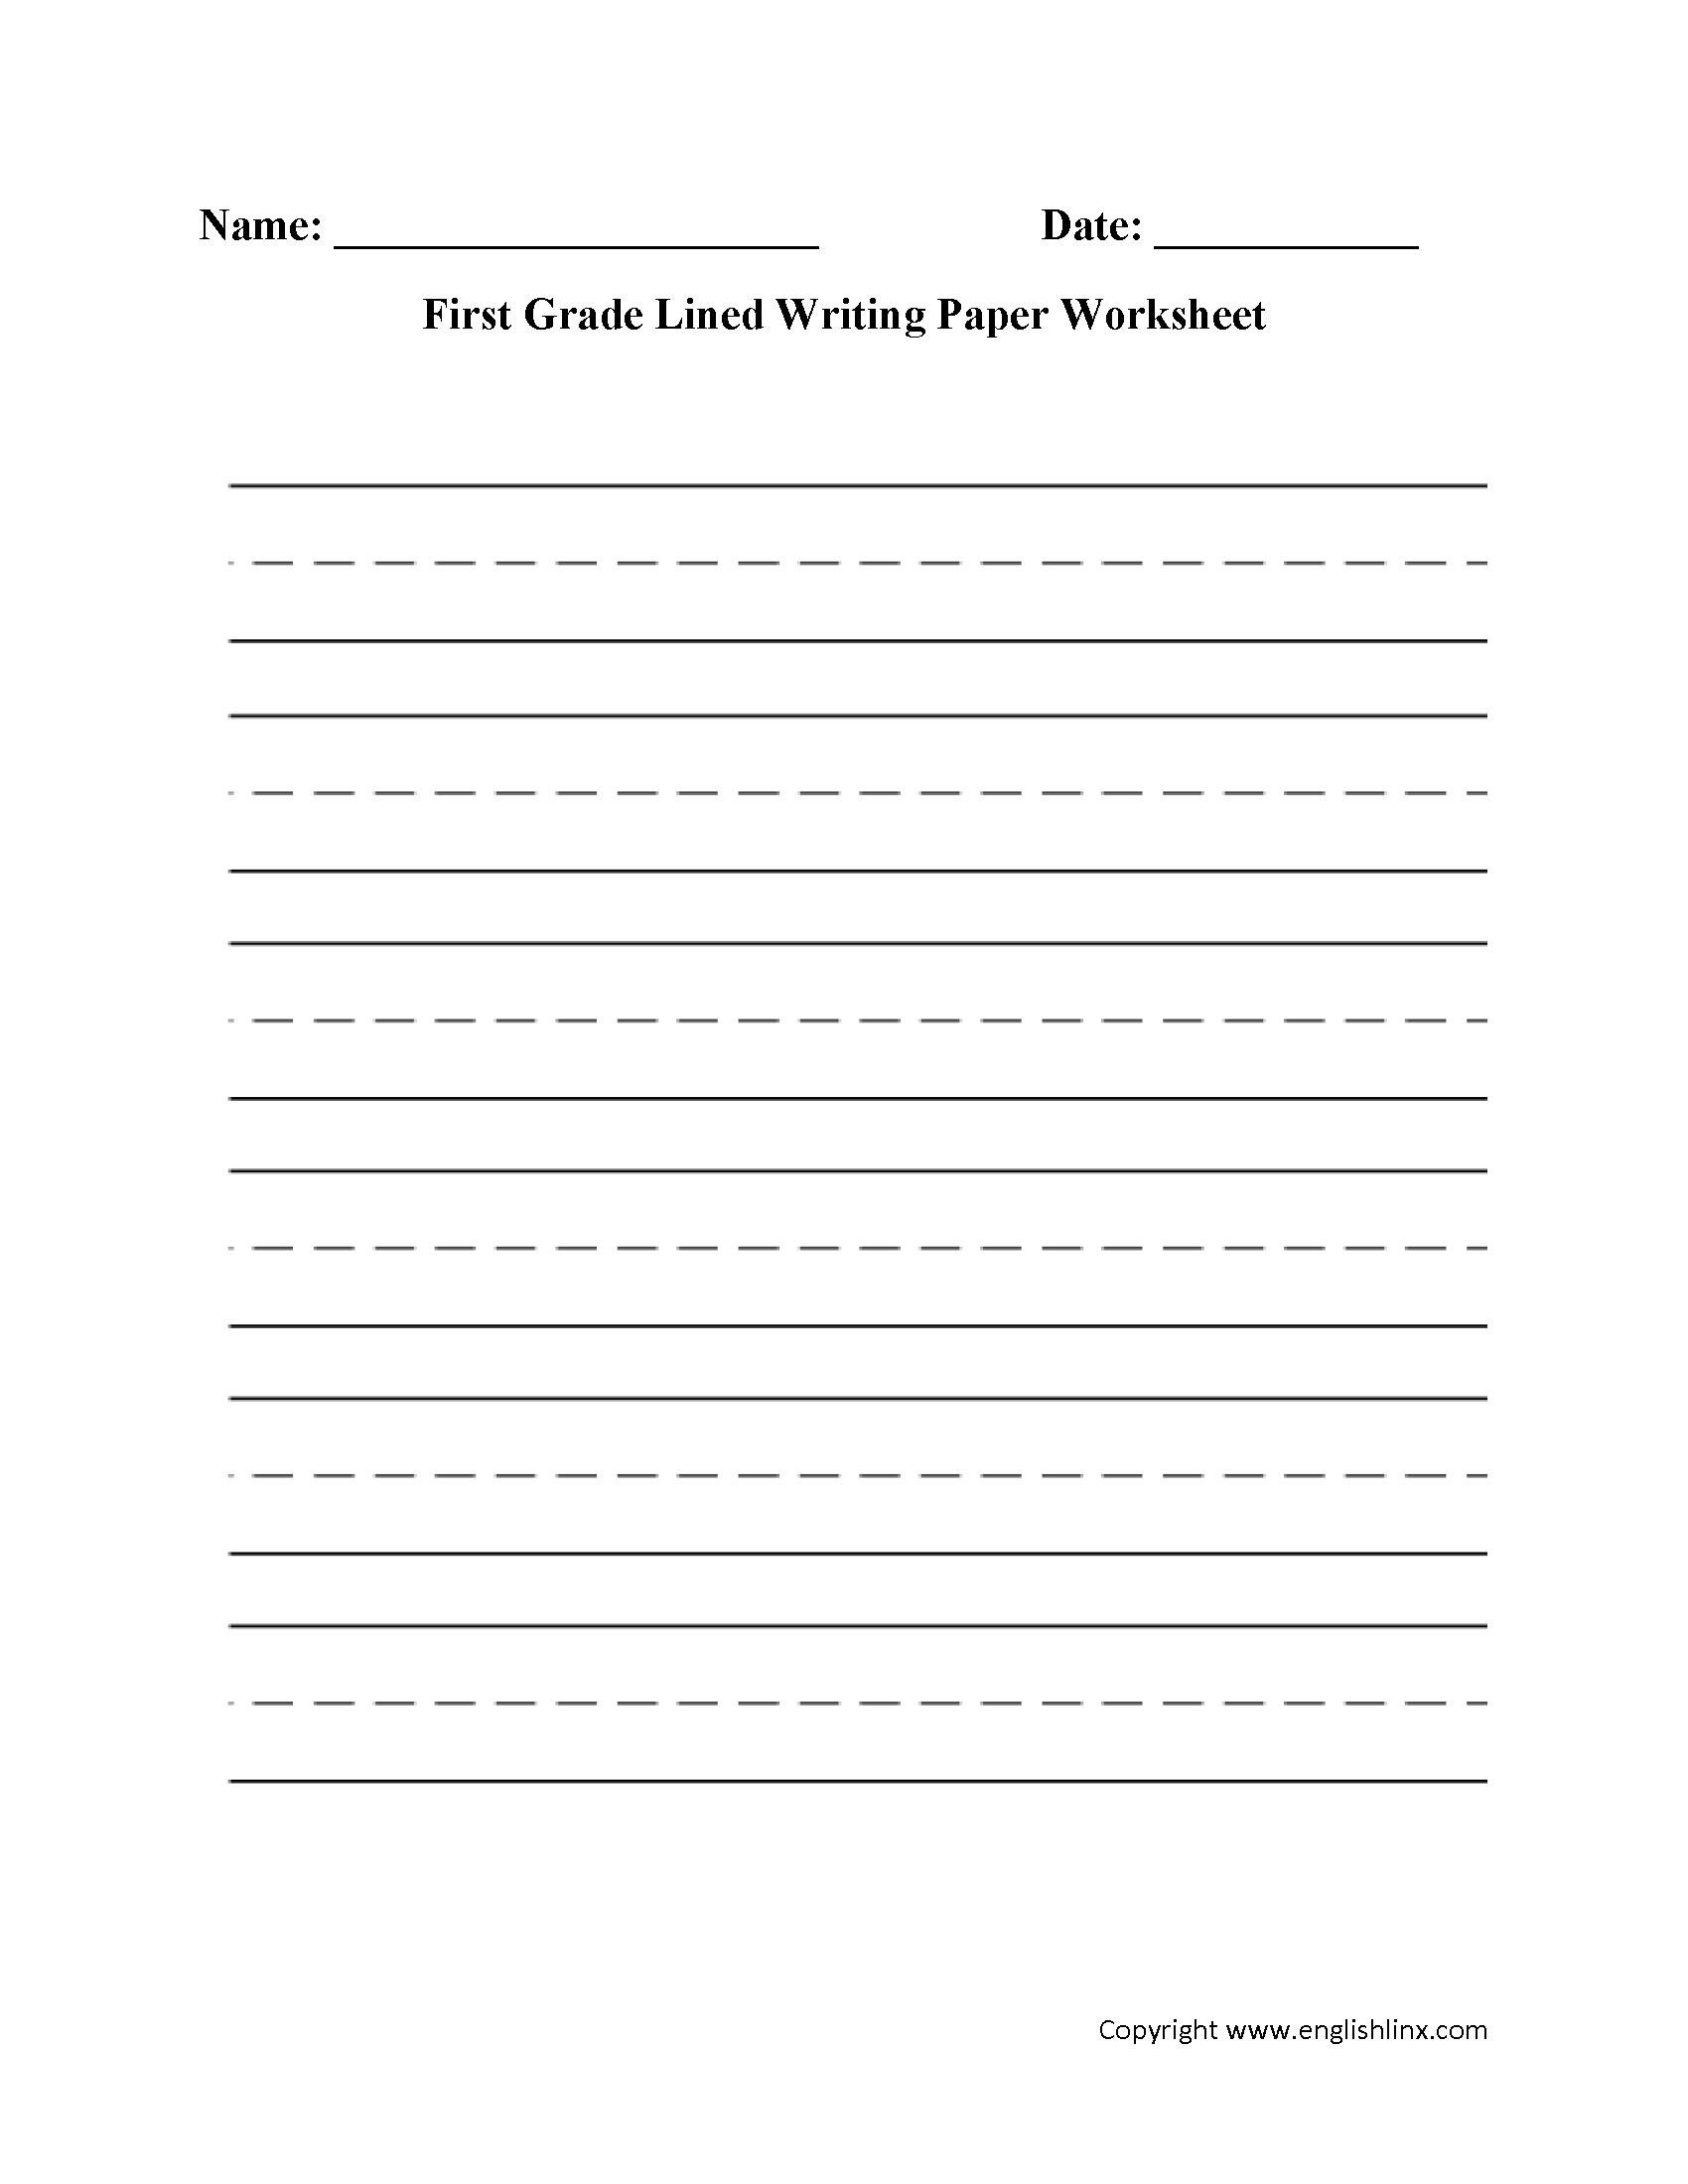 Writing Worksheets | Lined Writing Paper Worksheets - Free Printable Handwriting Paper For First Grade